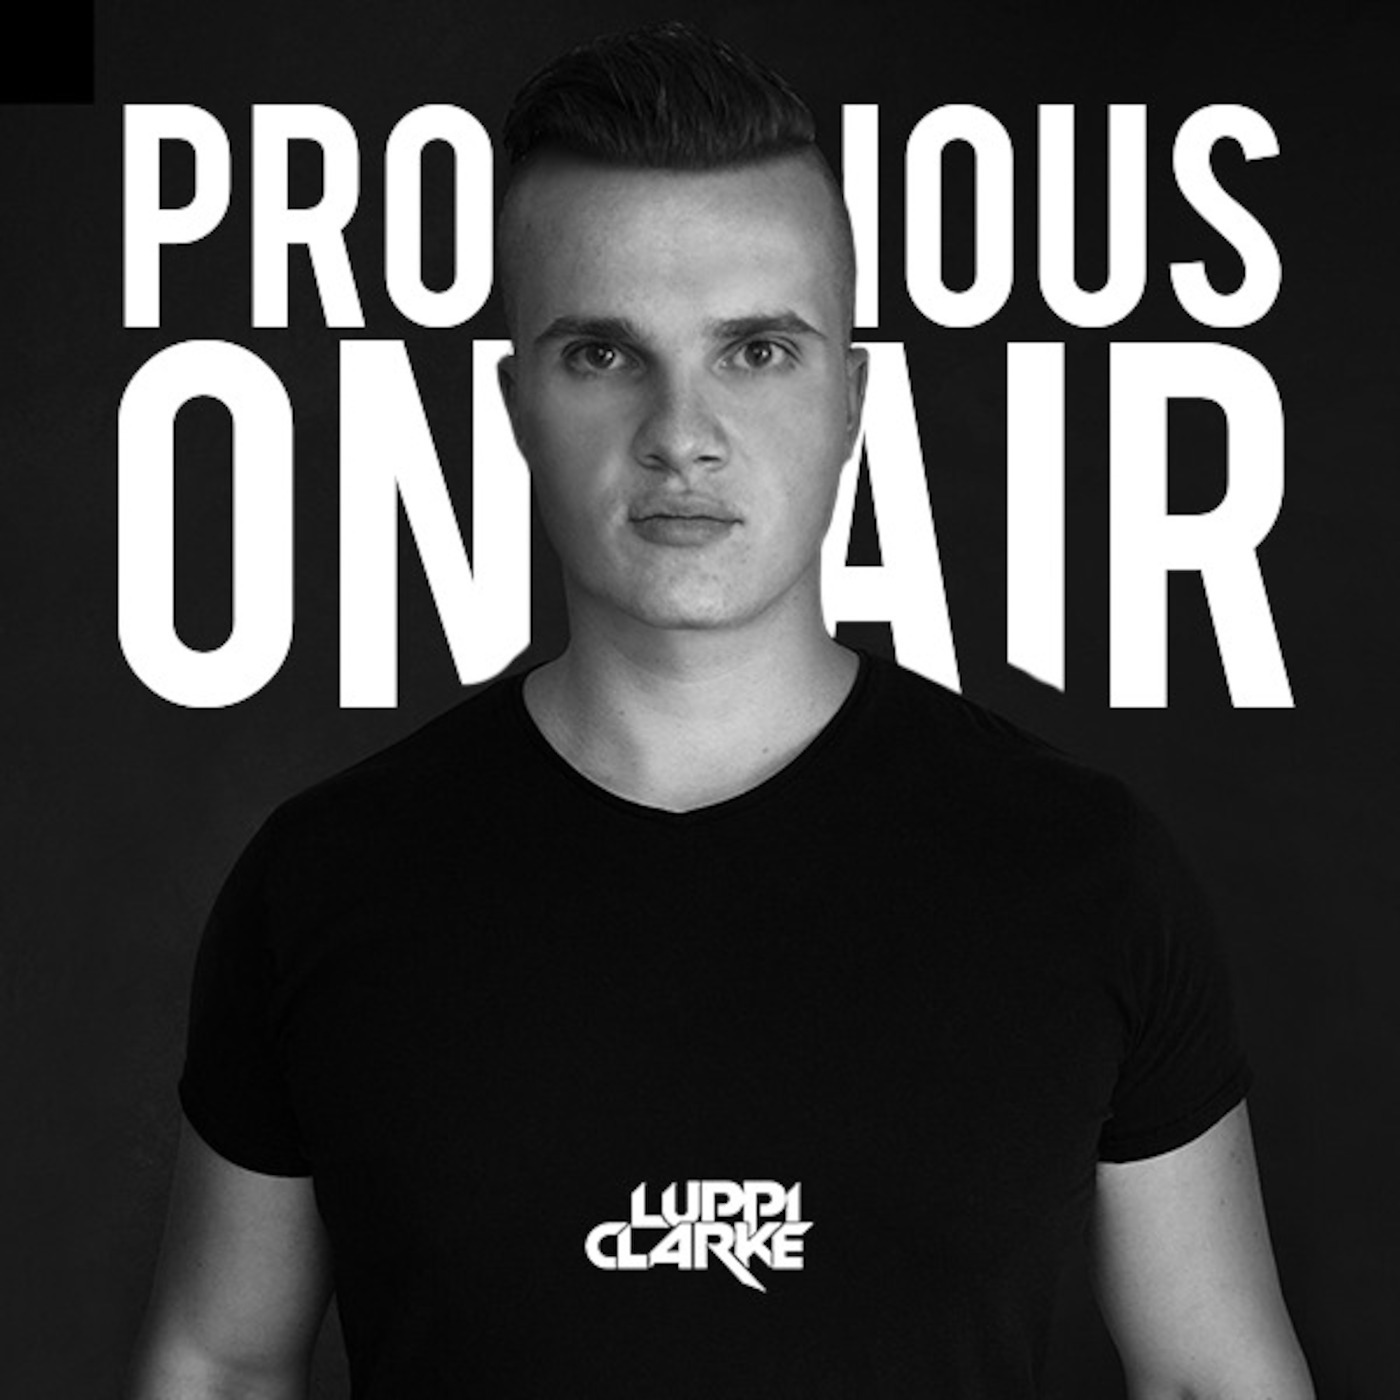 Luppi Clarke - Prodigious On-Air